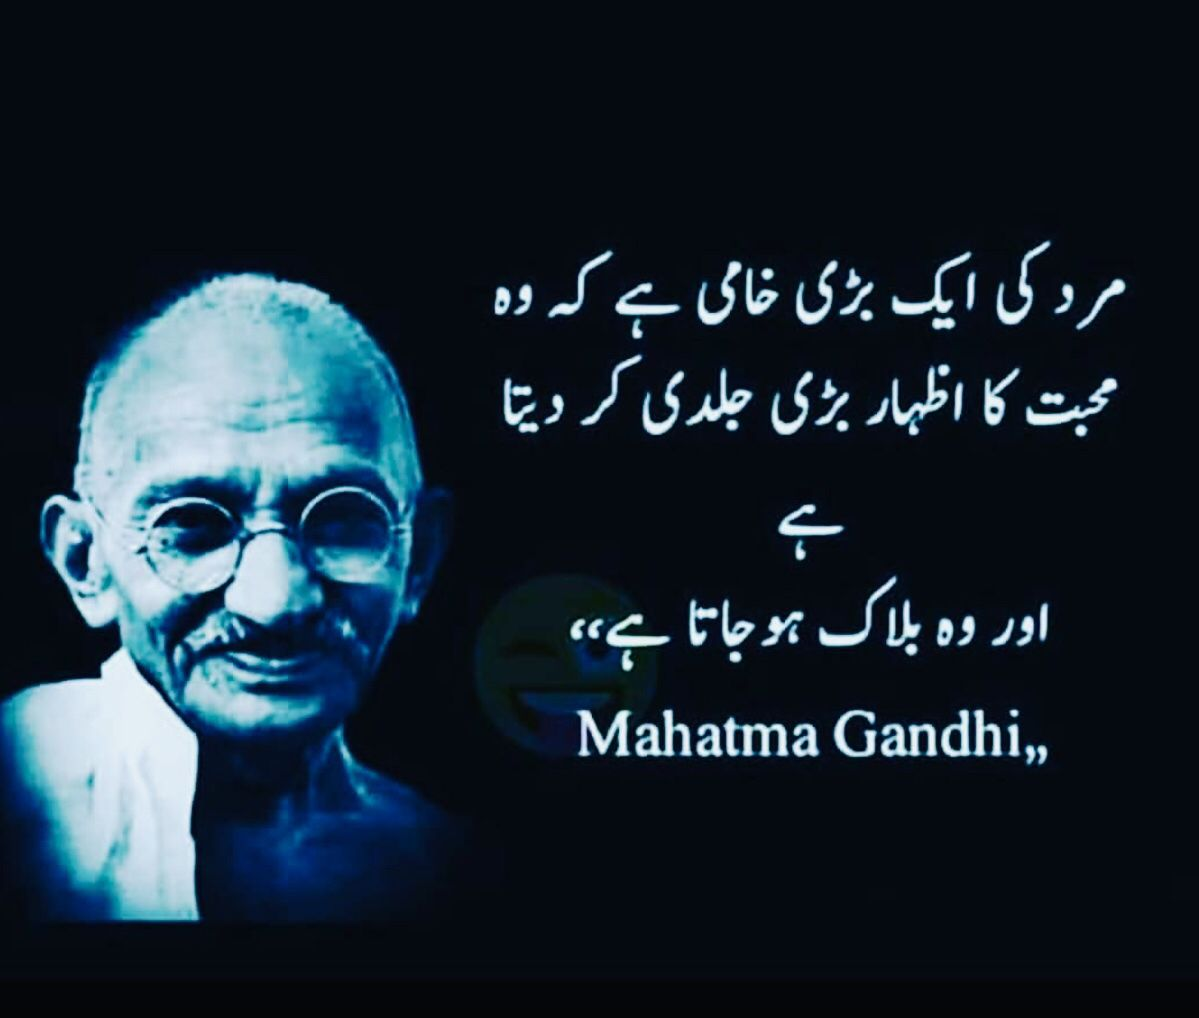 Pin By Kurrii Careless On Urdu Quotes Urdu Quotes Funny Humor